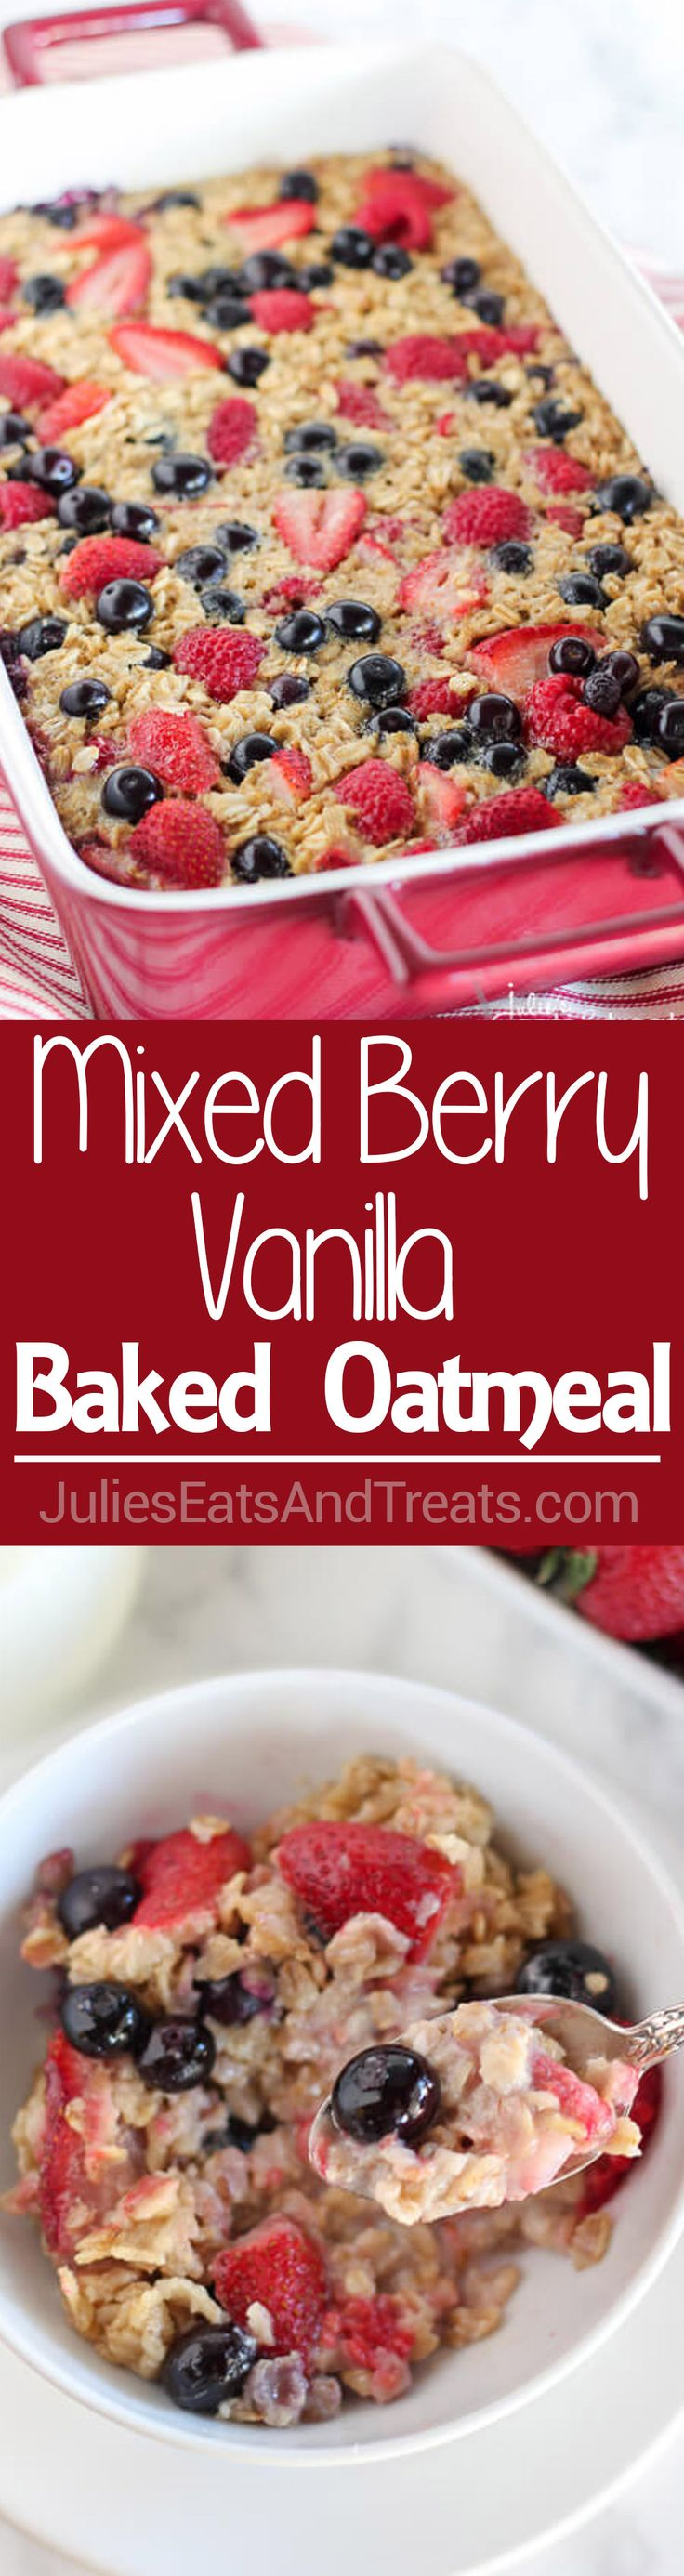 Mixed Berry Vanilla Baked Oatmeal Recipe - This easy baked oatmeal is filled with oats, maple syrup, fresh berries and fragrant vanilla. It's the perfect make-ahead breakfast recipe for busy mornings.